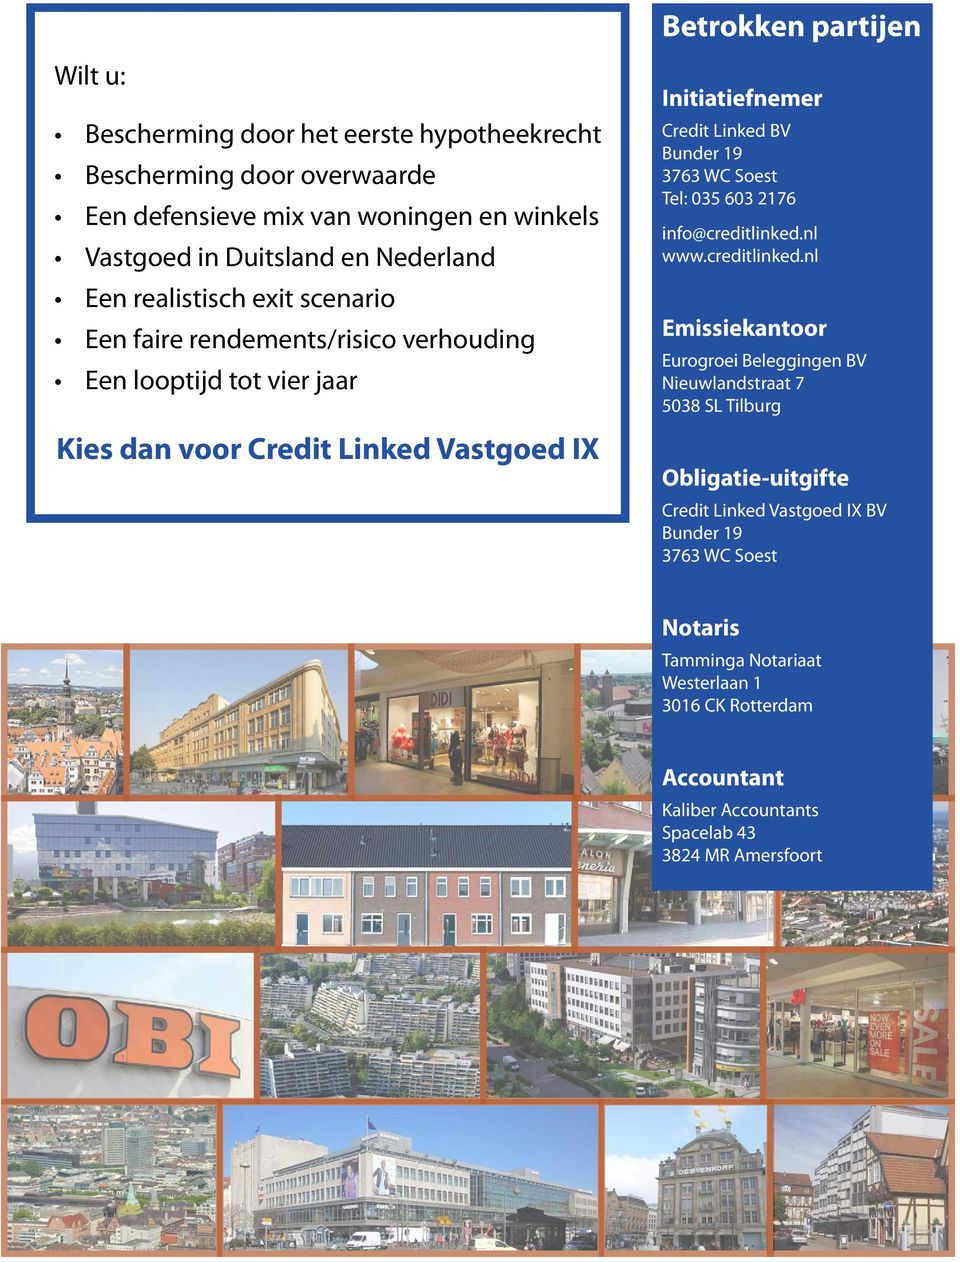 Linked BV Bunder 19 3763 WC Soest Tel: 035 603 2176 info@creditlinked.